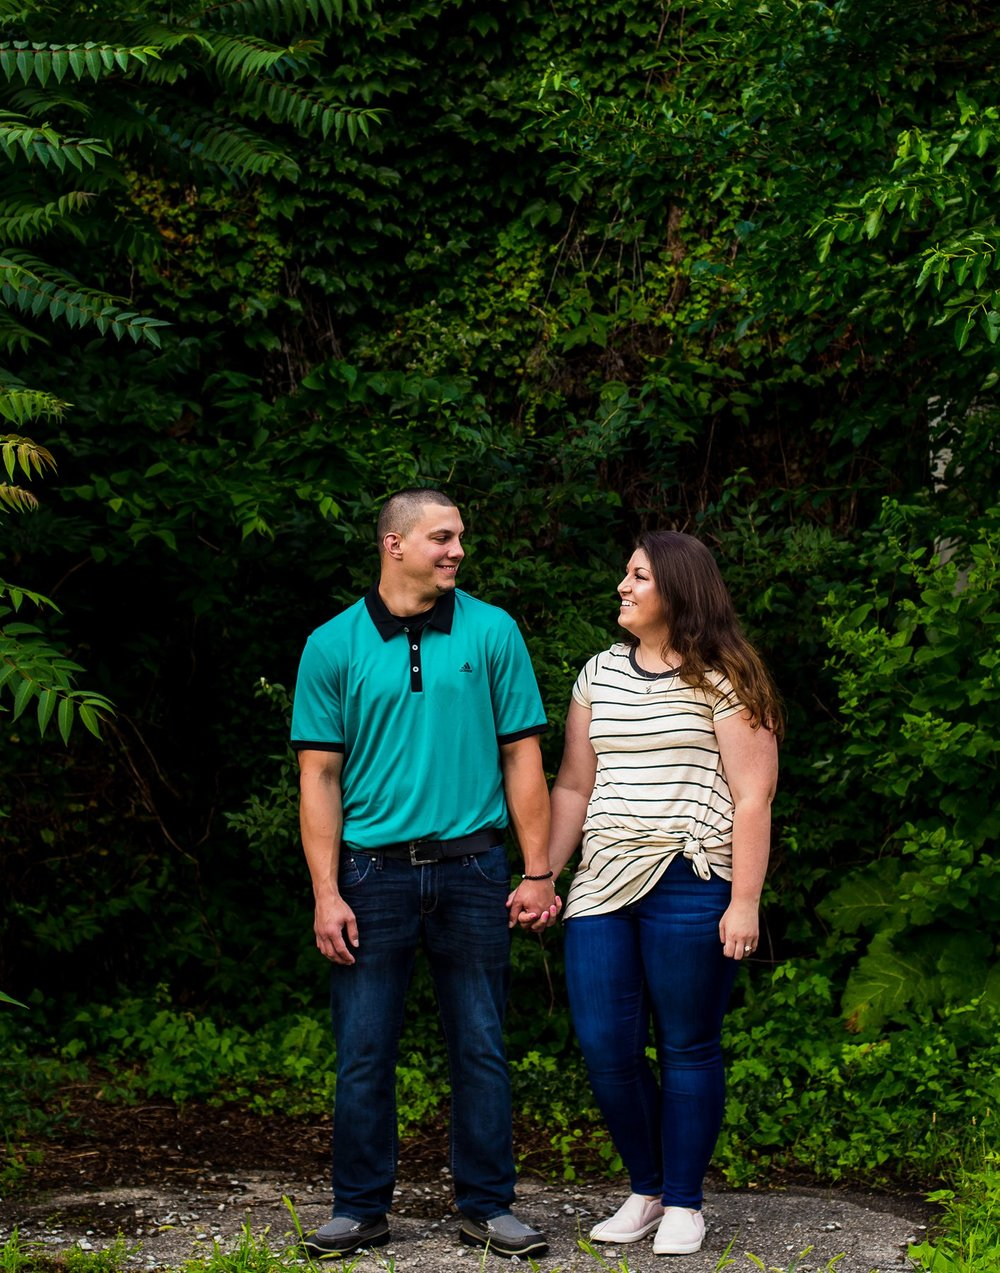 Engagement session in downtown New Castle, Indiana